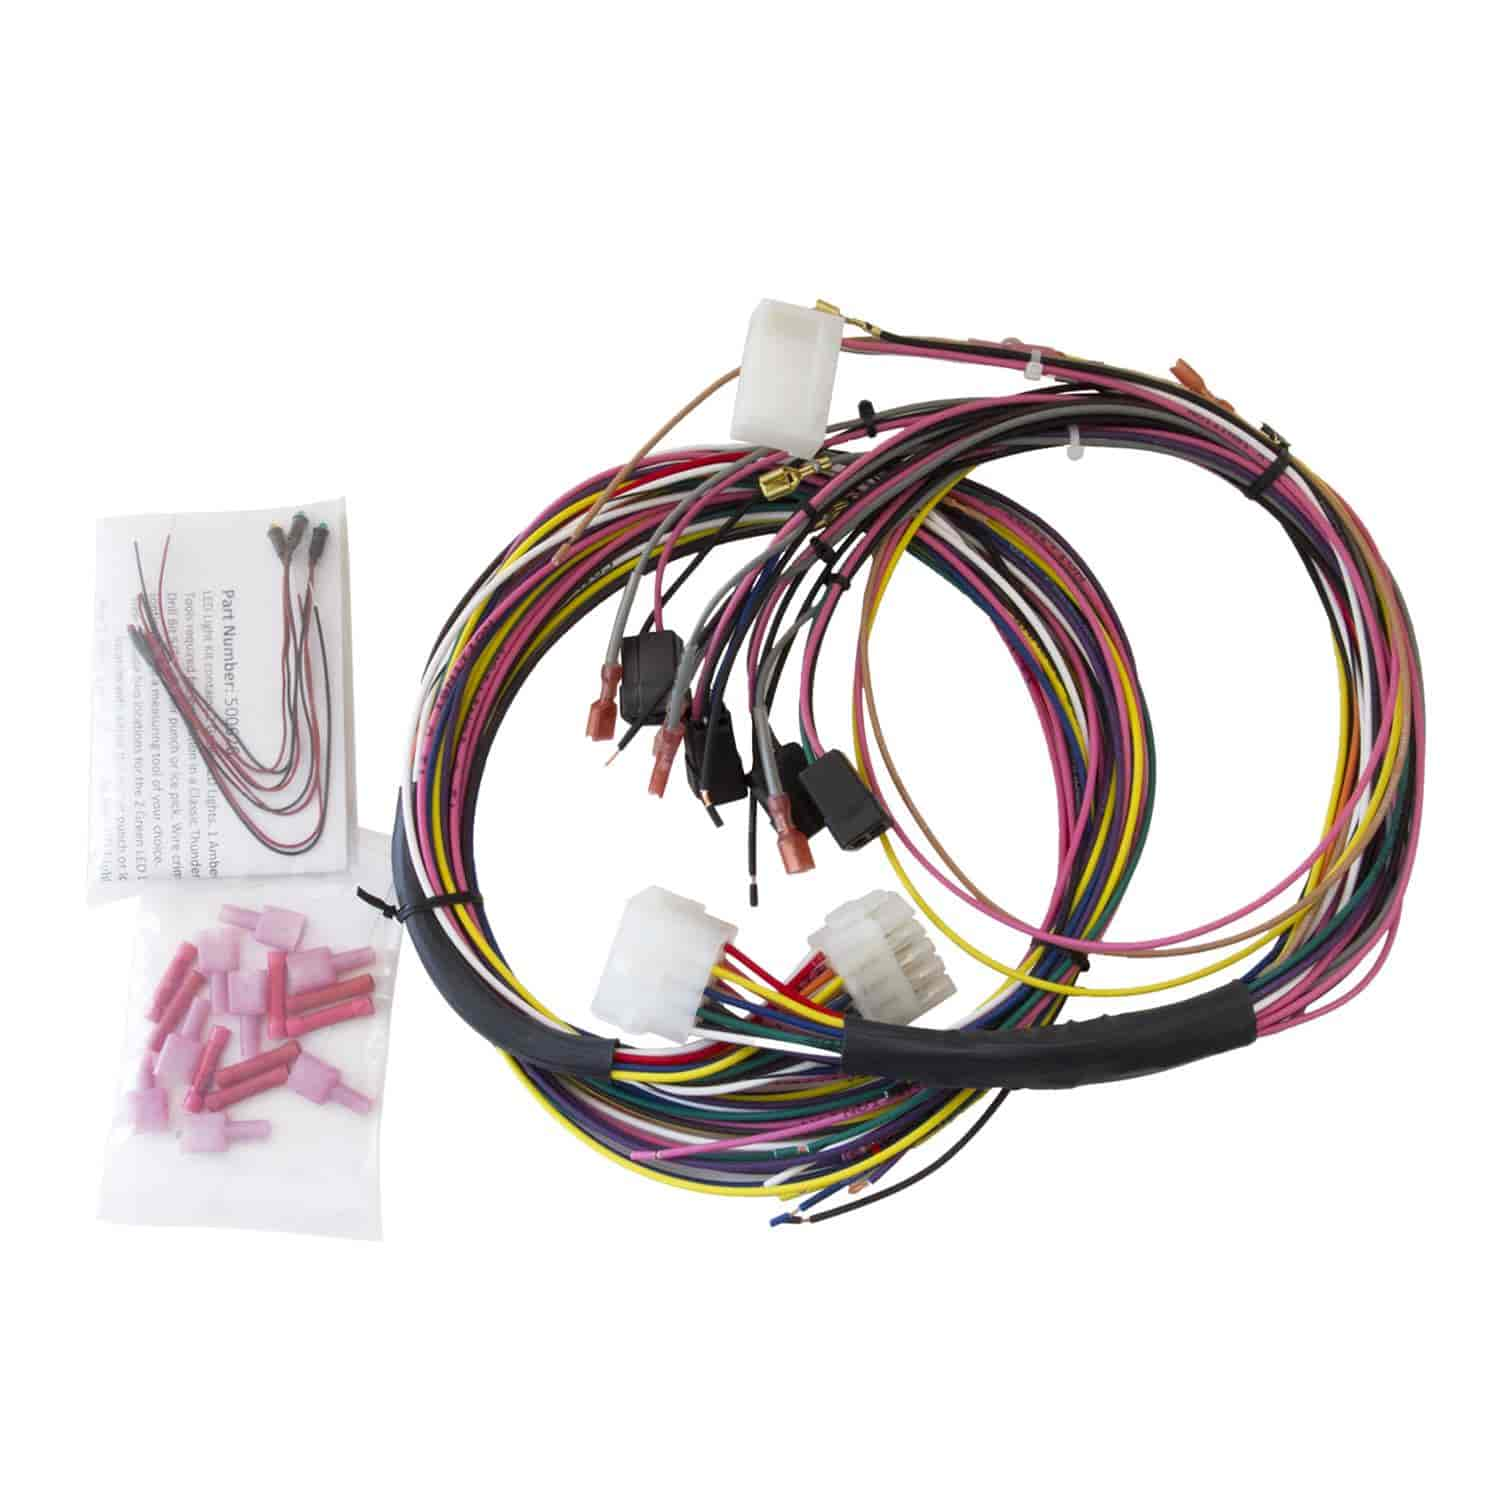 105 2198 auto meter 2198 replacement wiring harness universal jegs VW Wiring Harness Kits at gsmportal.co